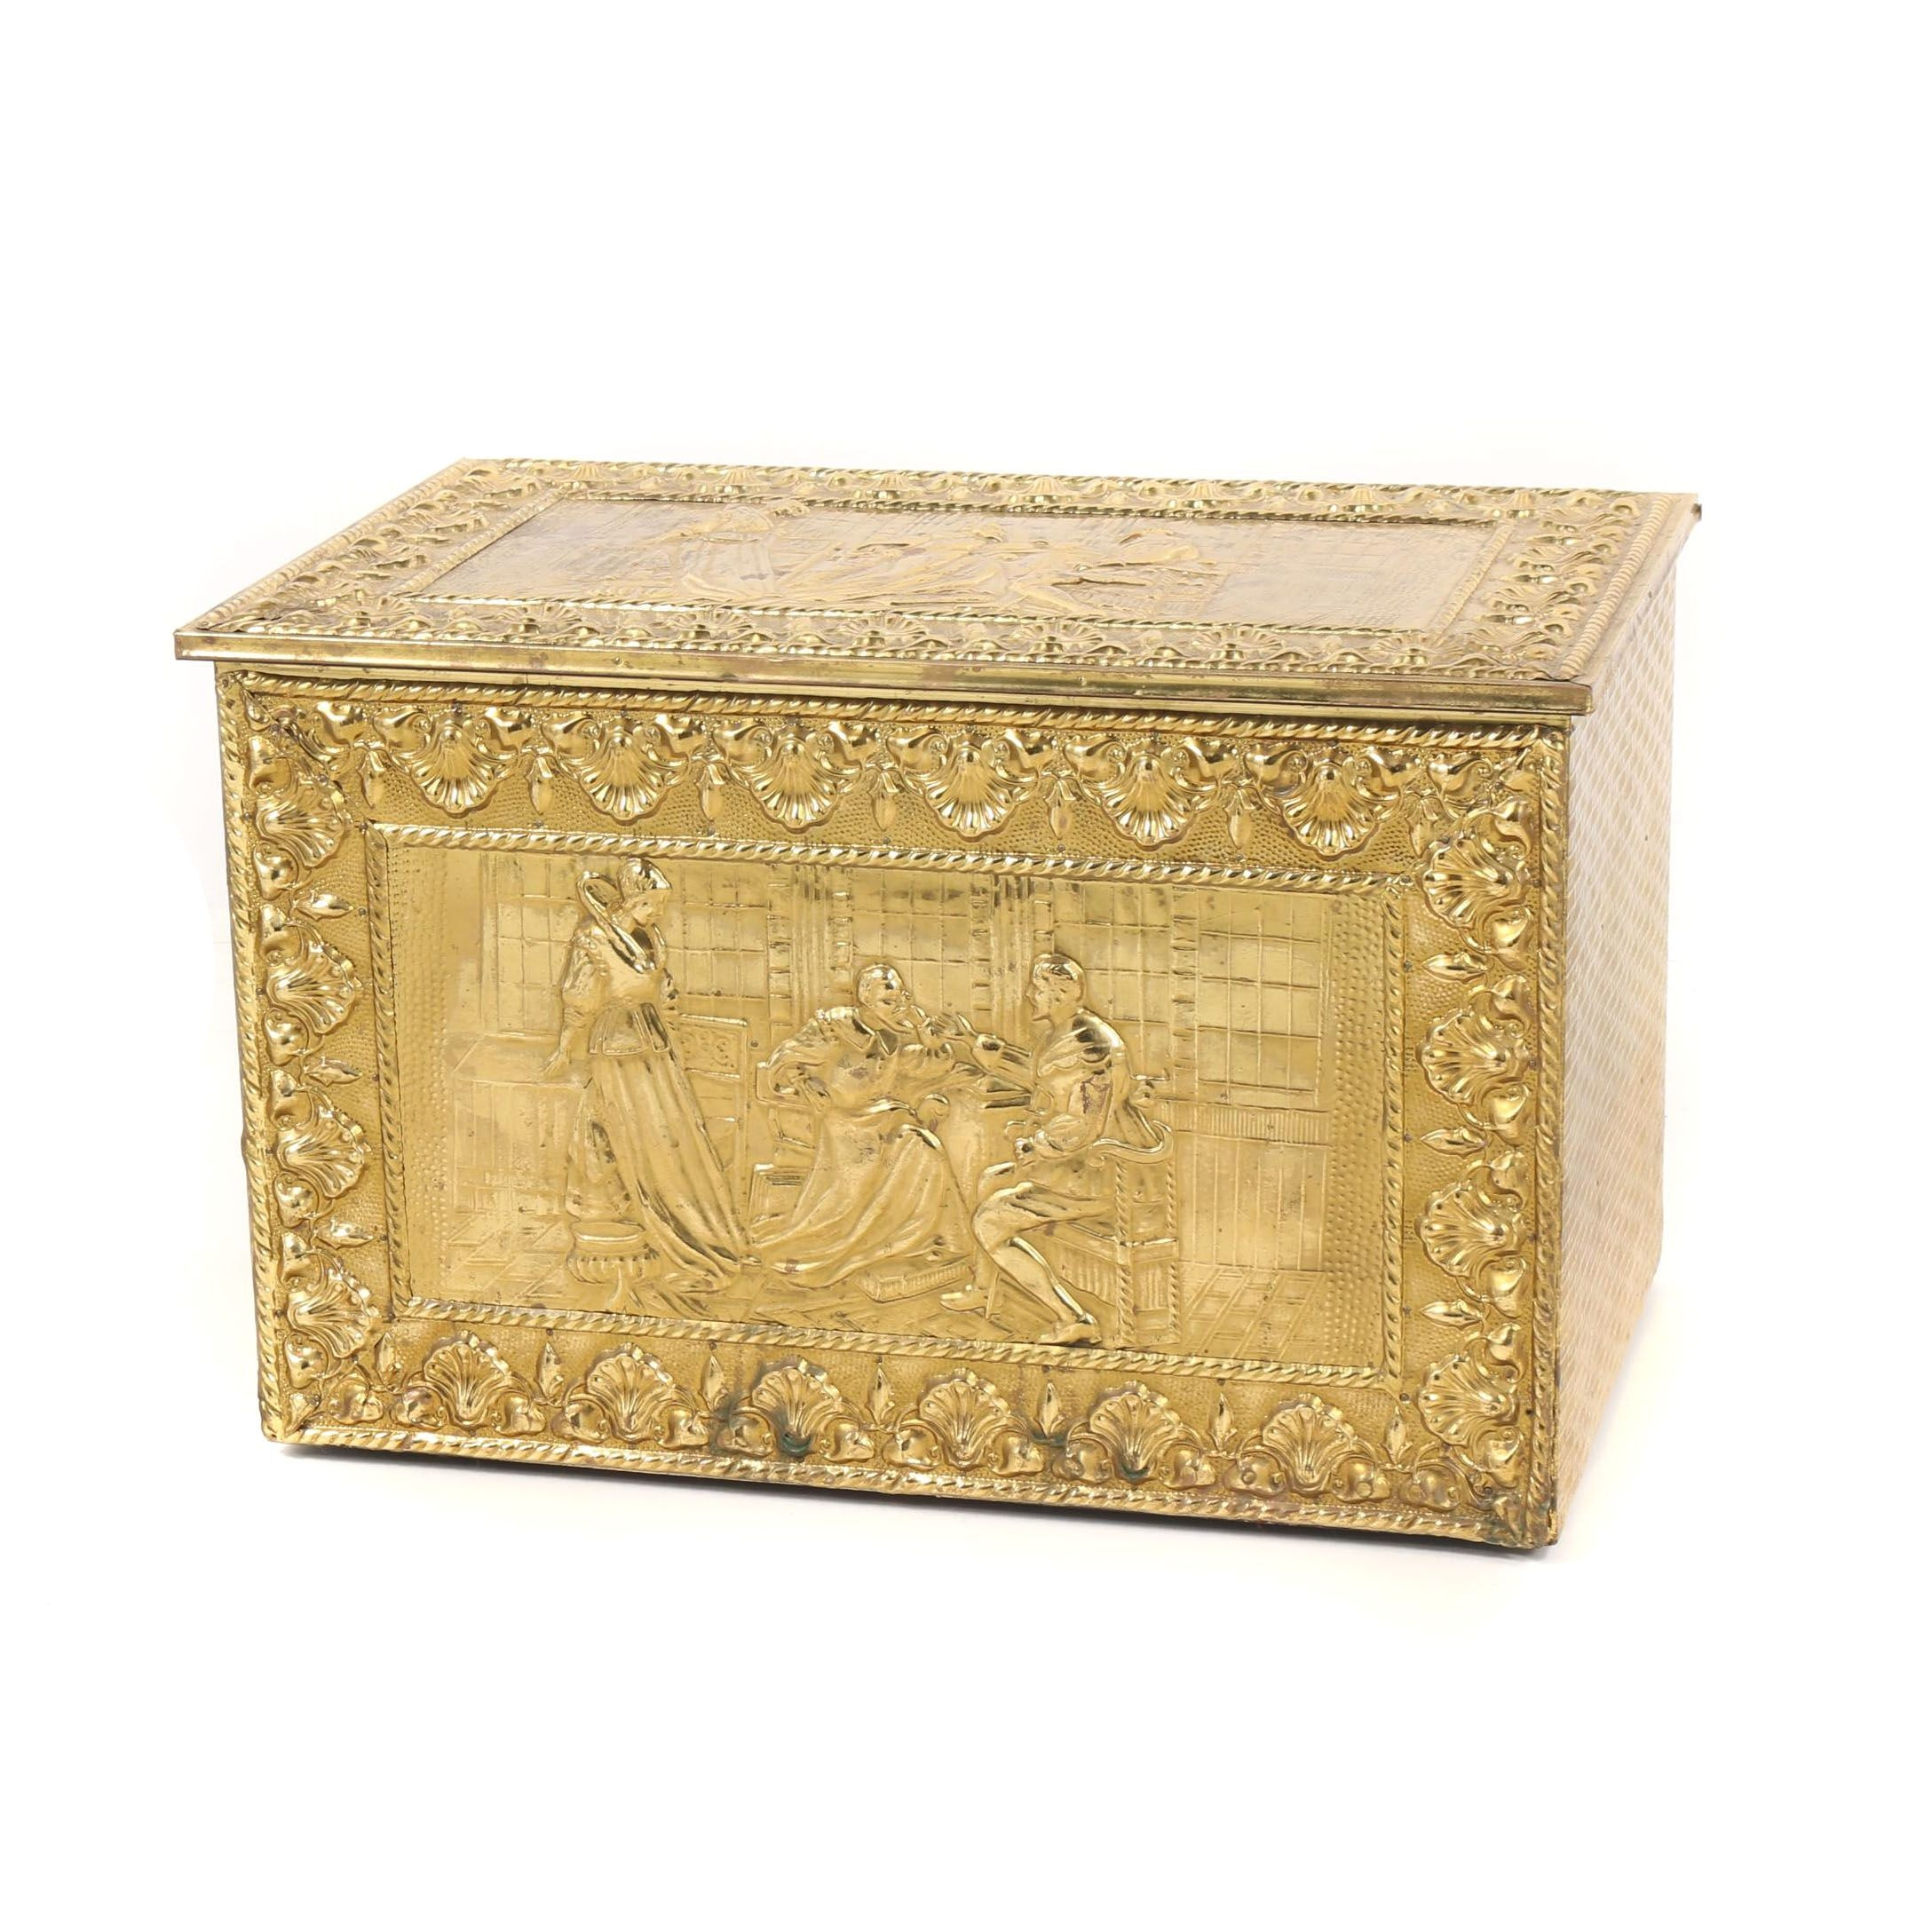 Wooden Small Trunk with Gilded Brass Overlay, 20th Century